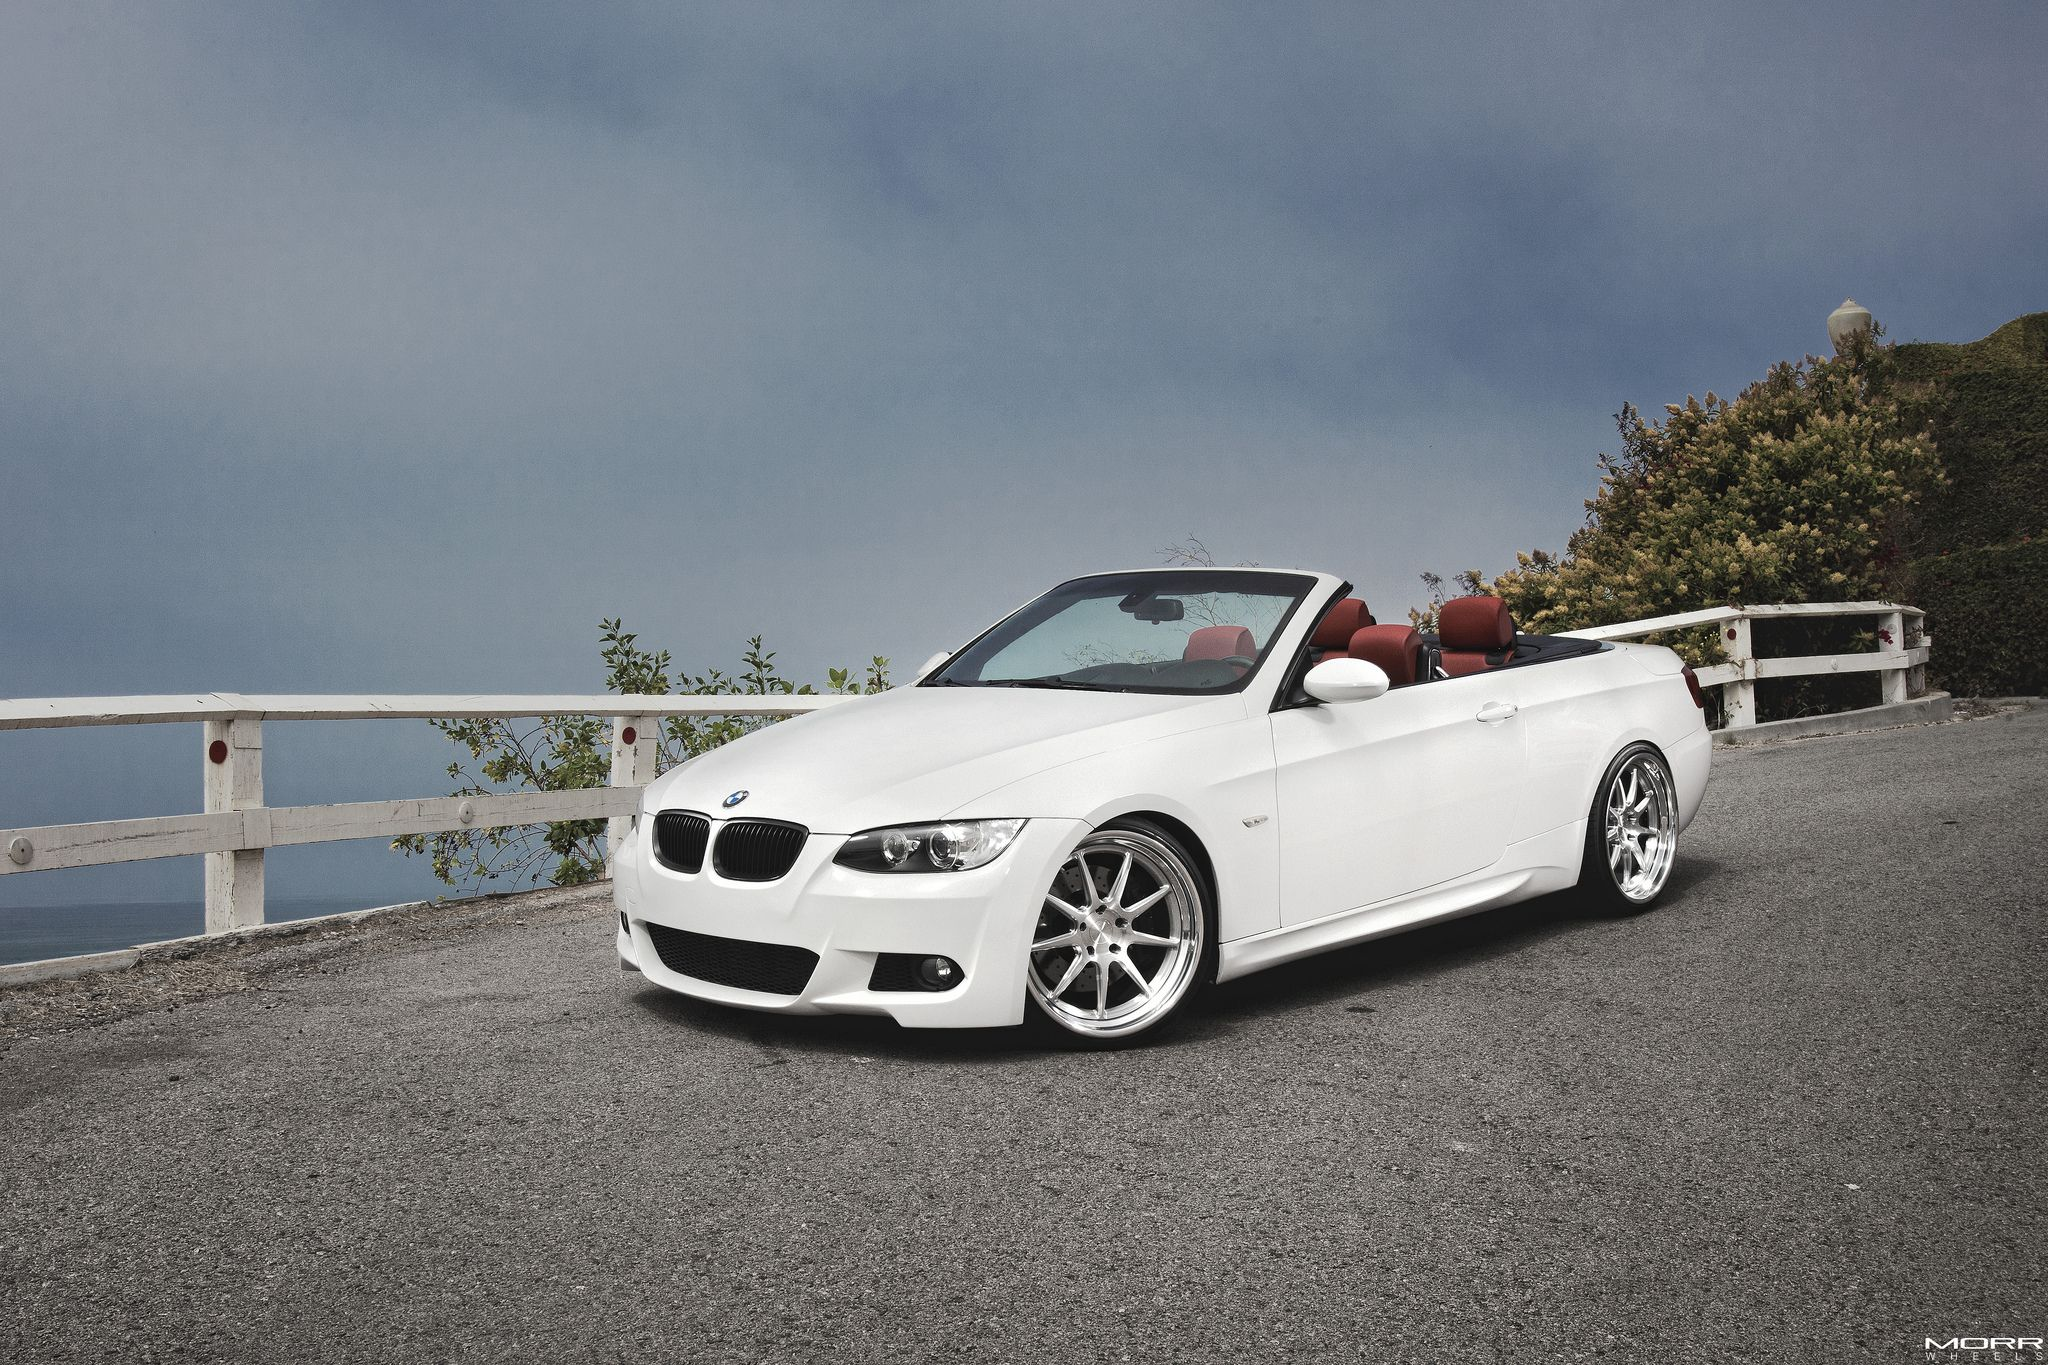 BMW 335I Convertible >> Alpine White Bmw 335i Convertible On Morr Wheels Bmw